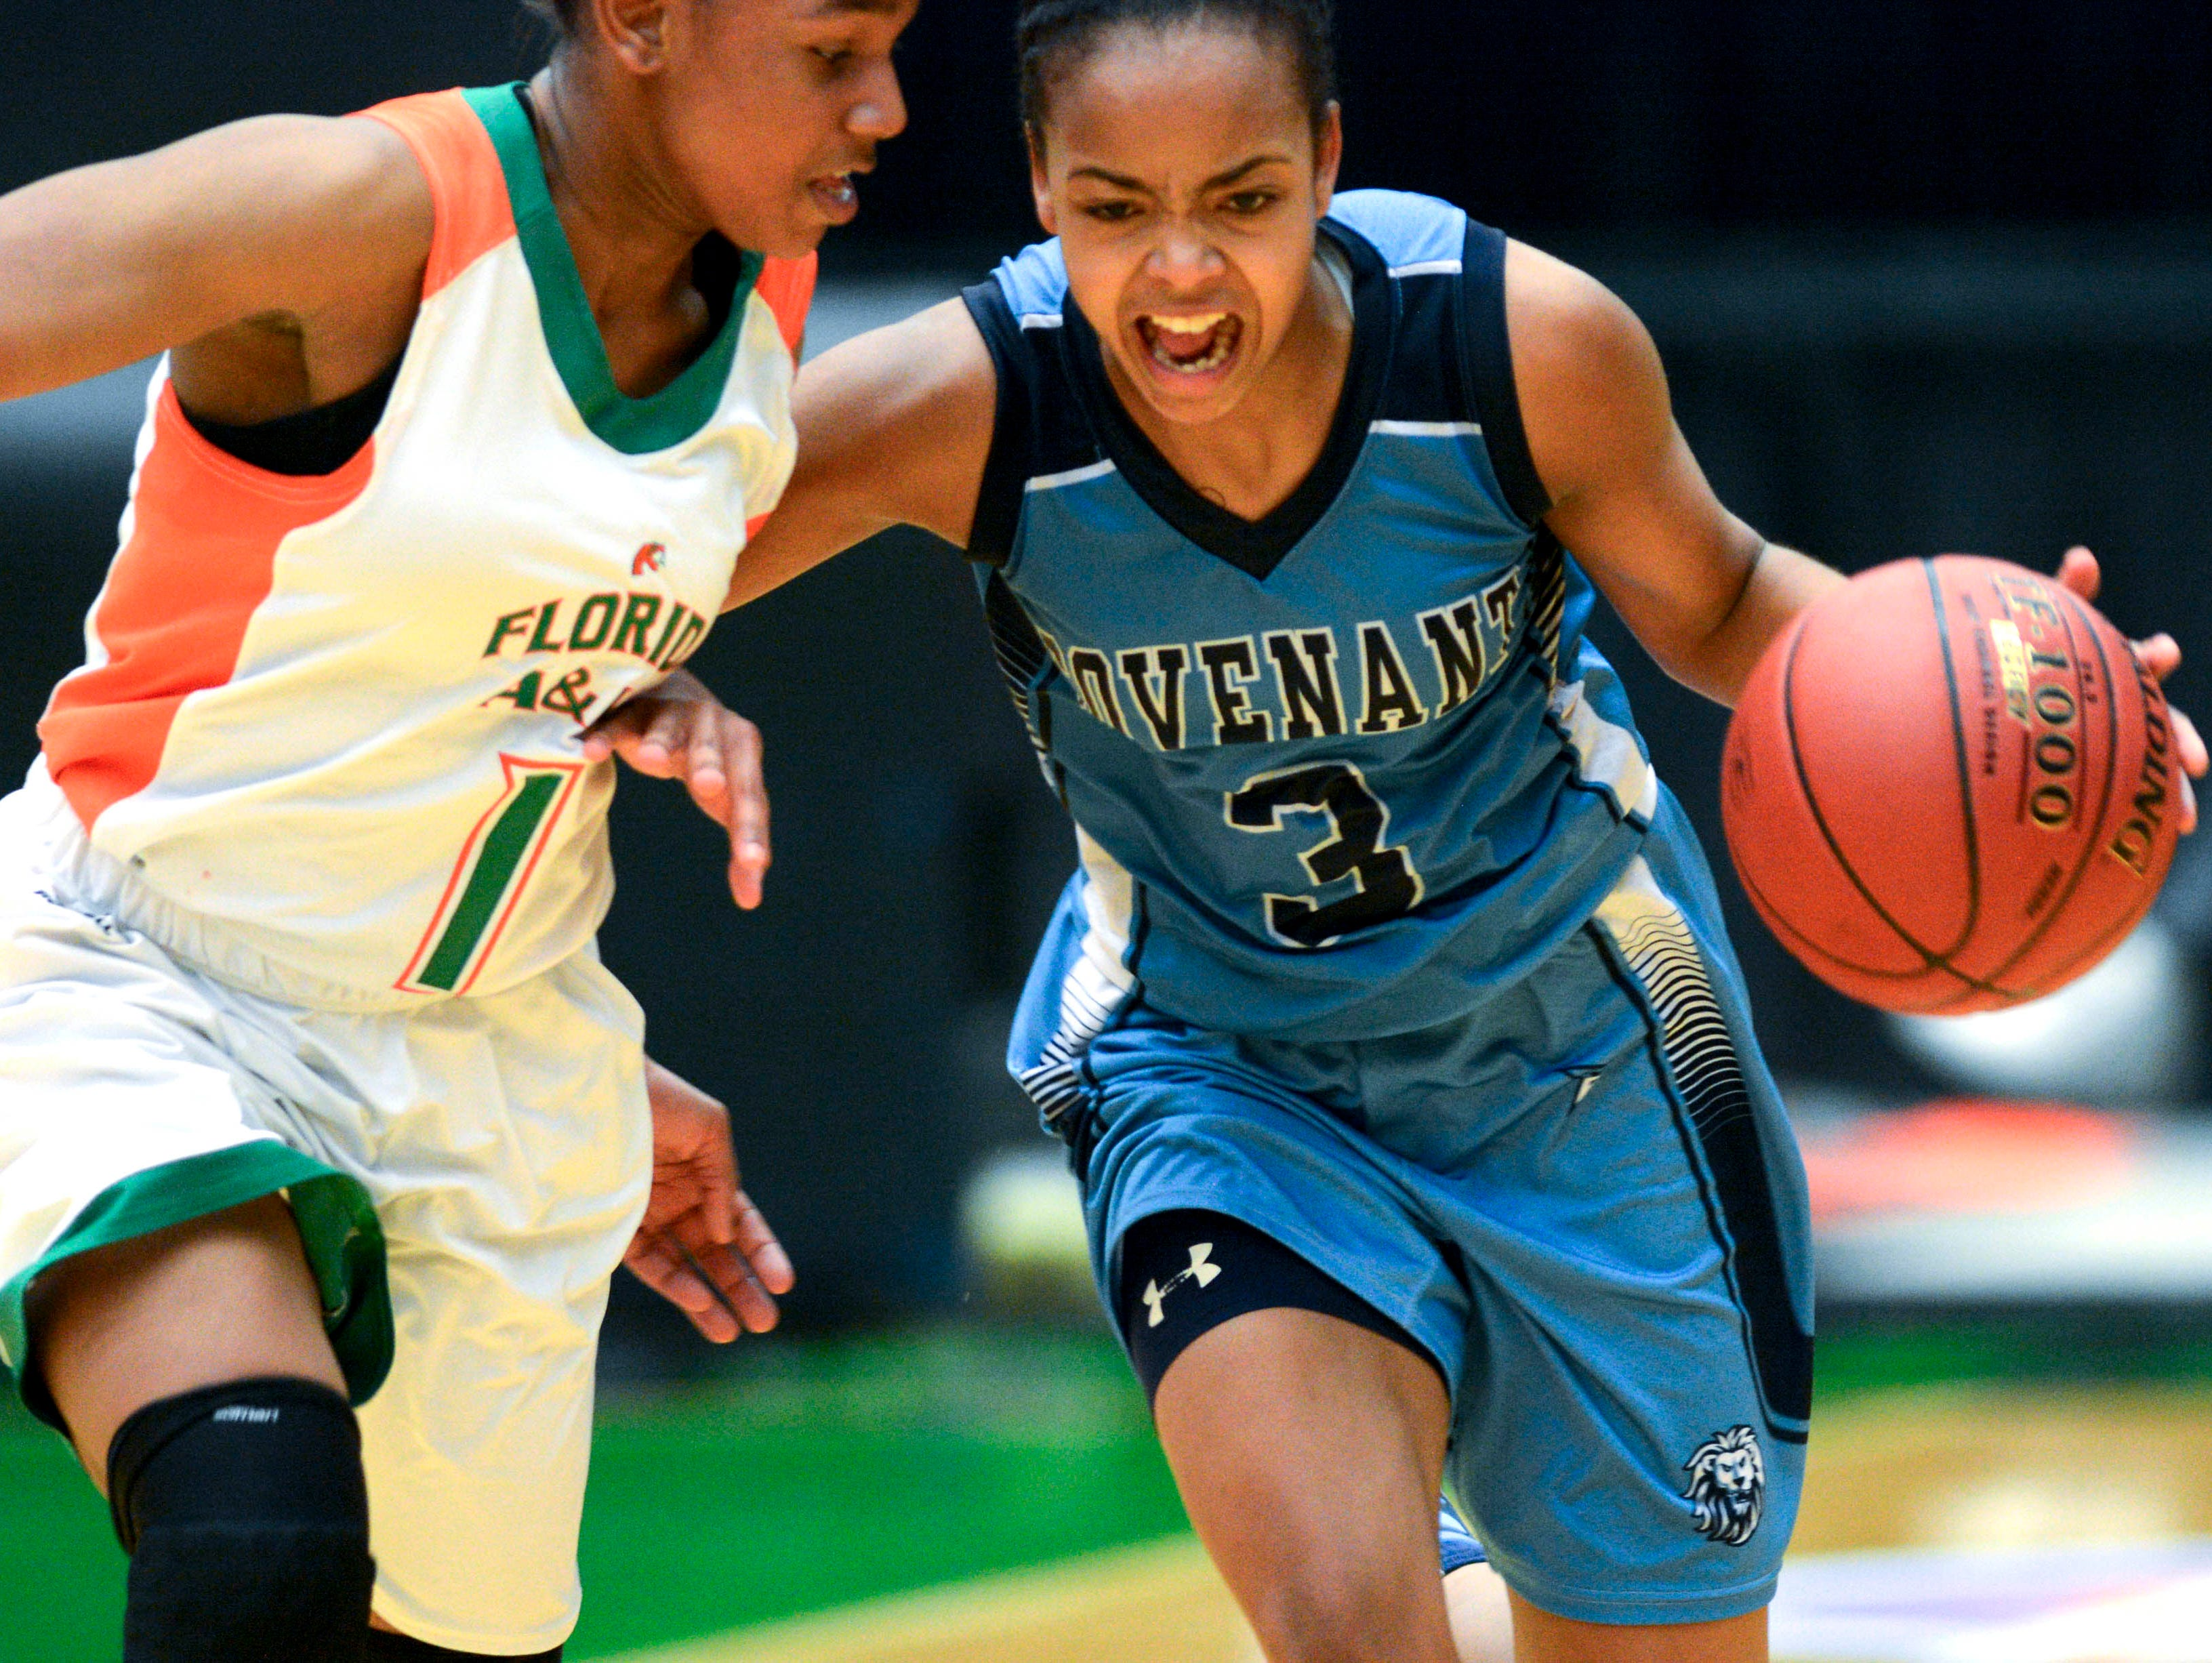 Alexis Gordon of Covenant Christian is FLORIDA TODAY's Girls Basketball Player of the Year.